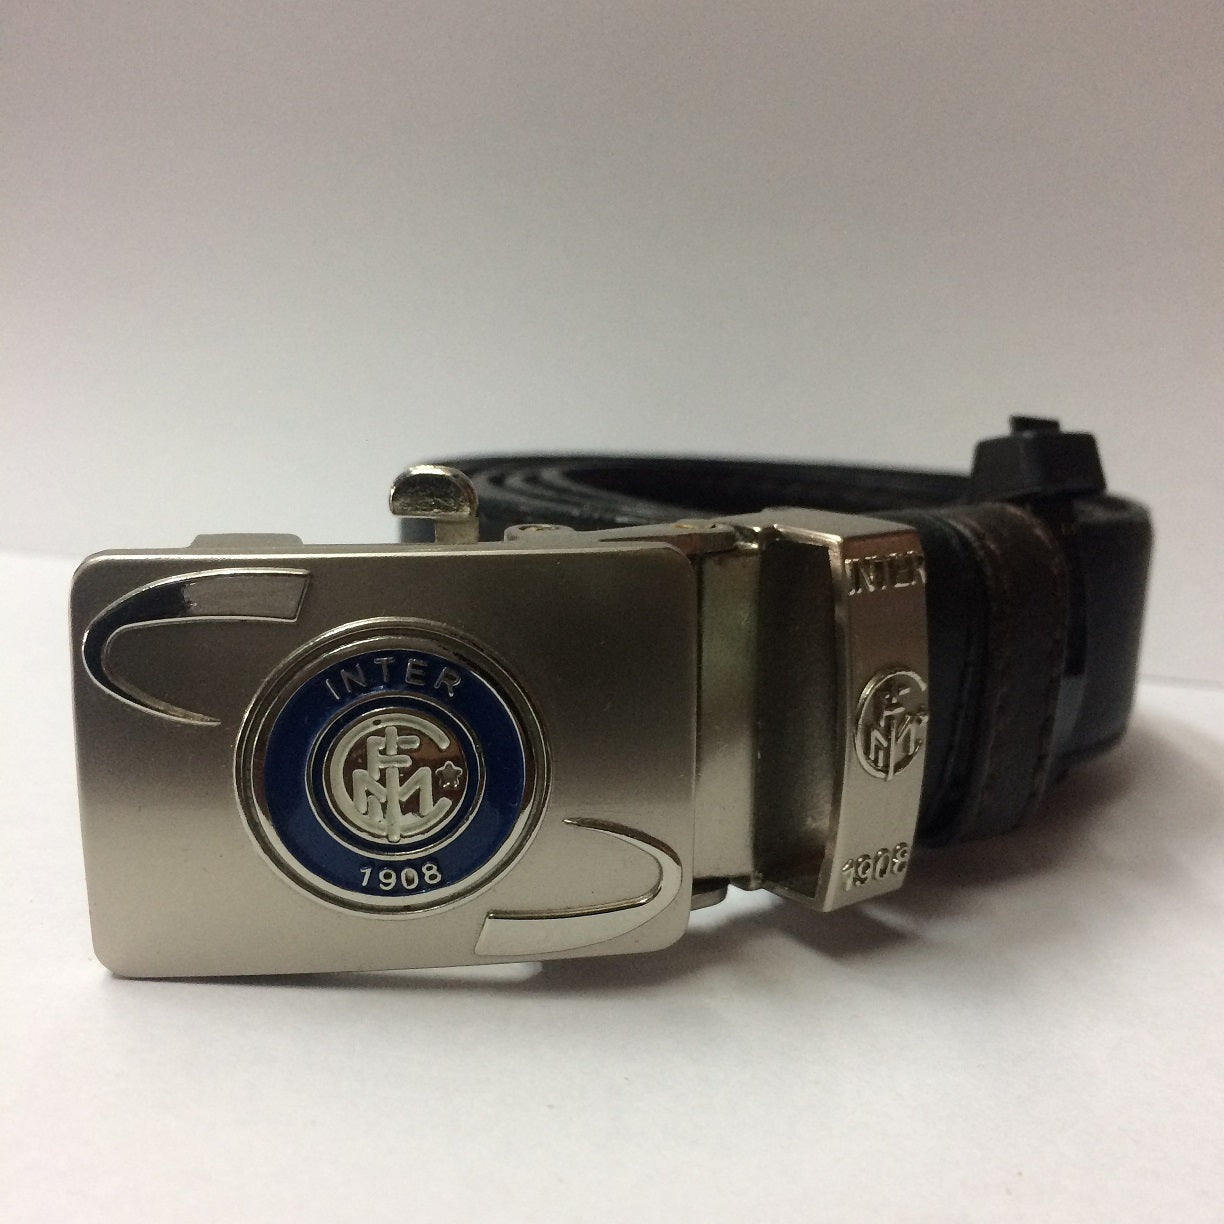 Inter Milan Men's Dress Belt